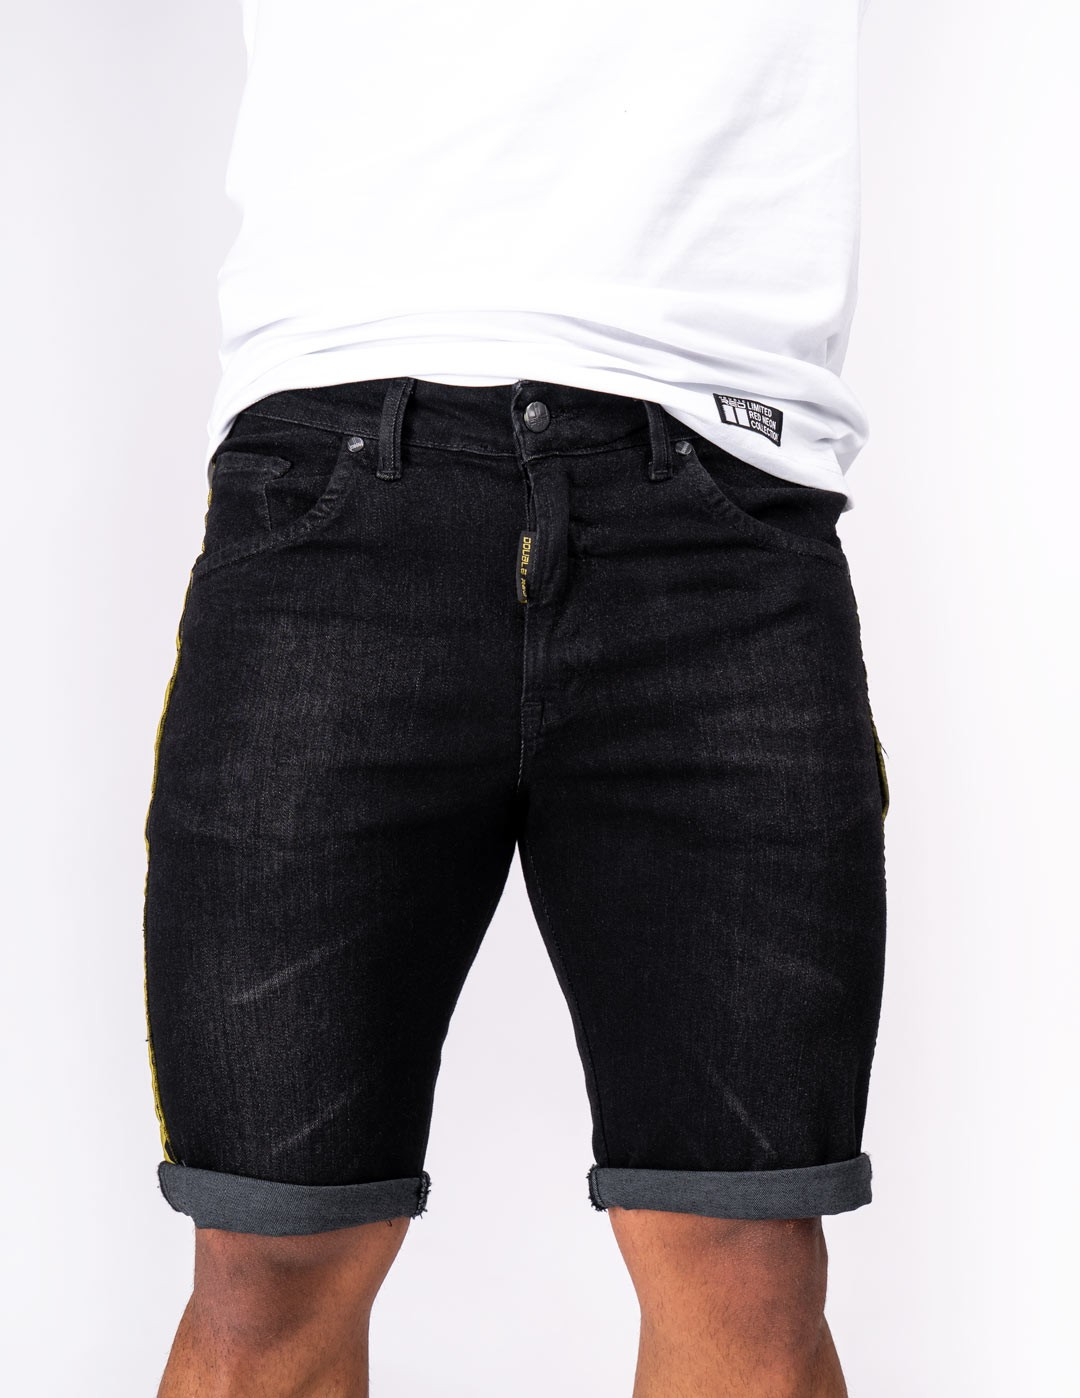 RED JEANS Shorts KUNG FU MASTER Black